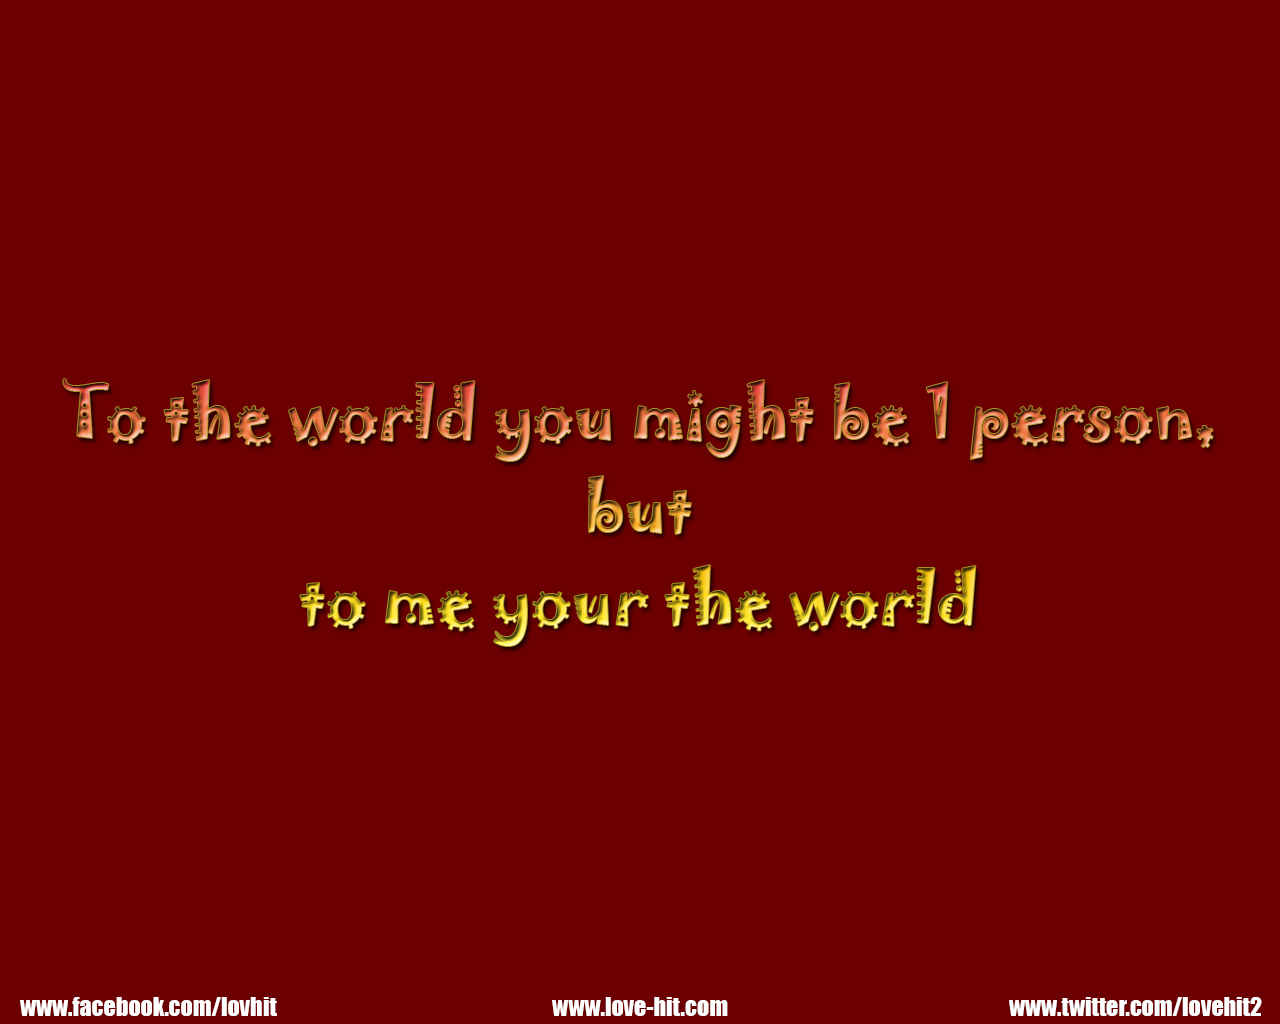 To the world you might be one person but to me your the world